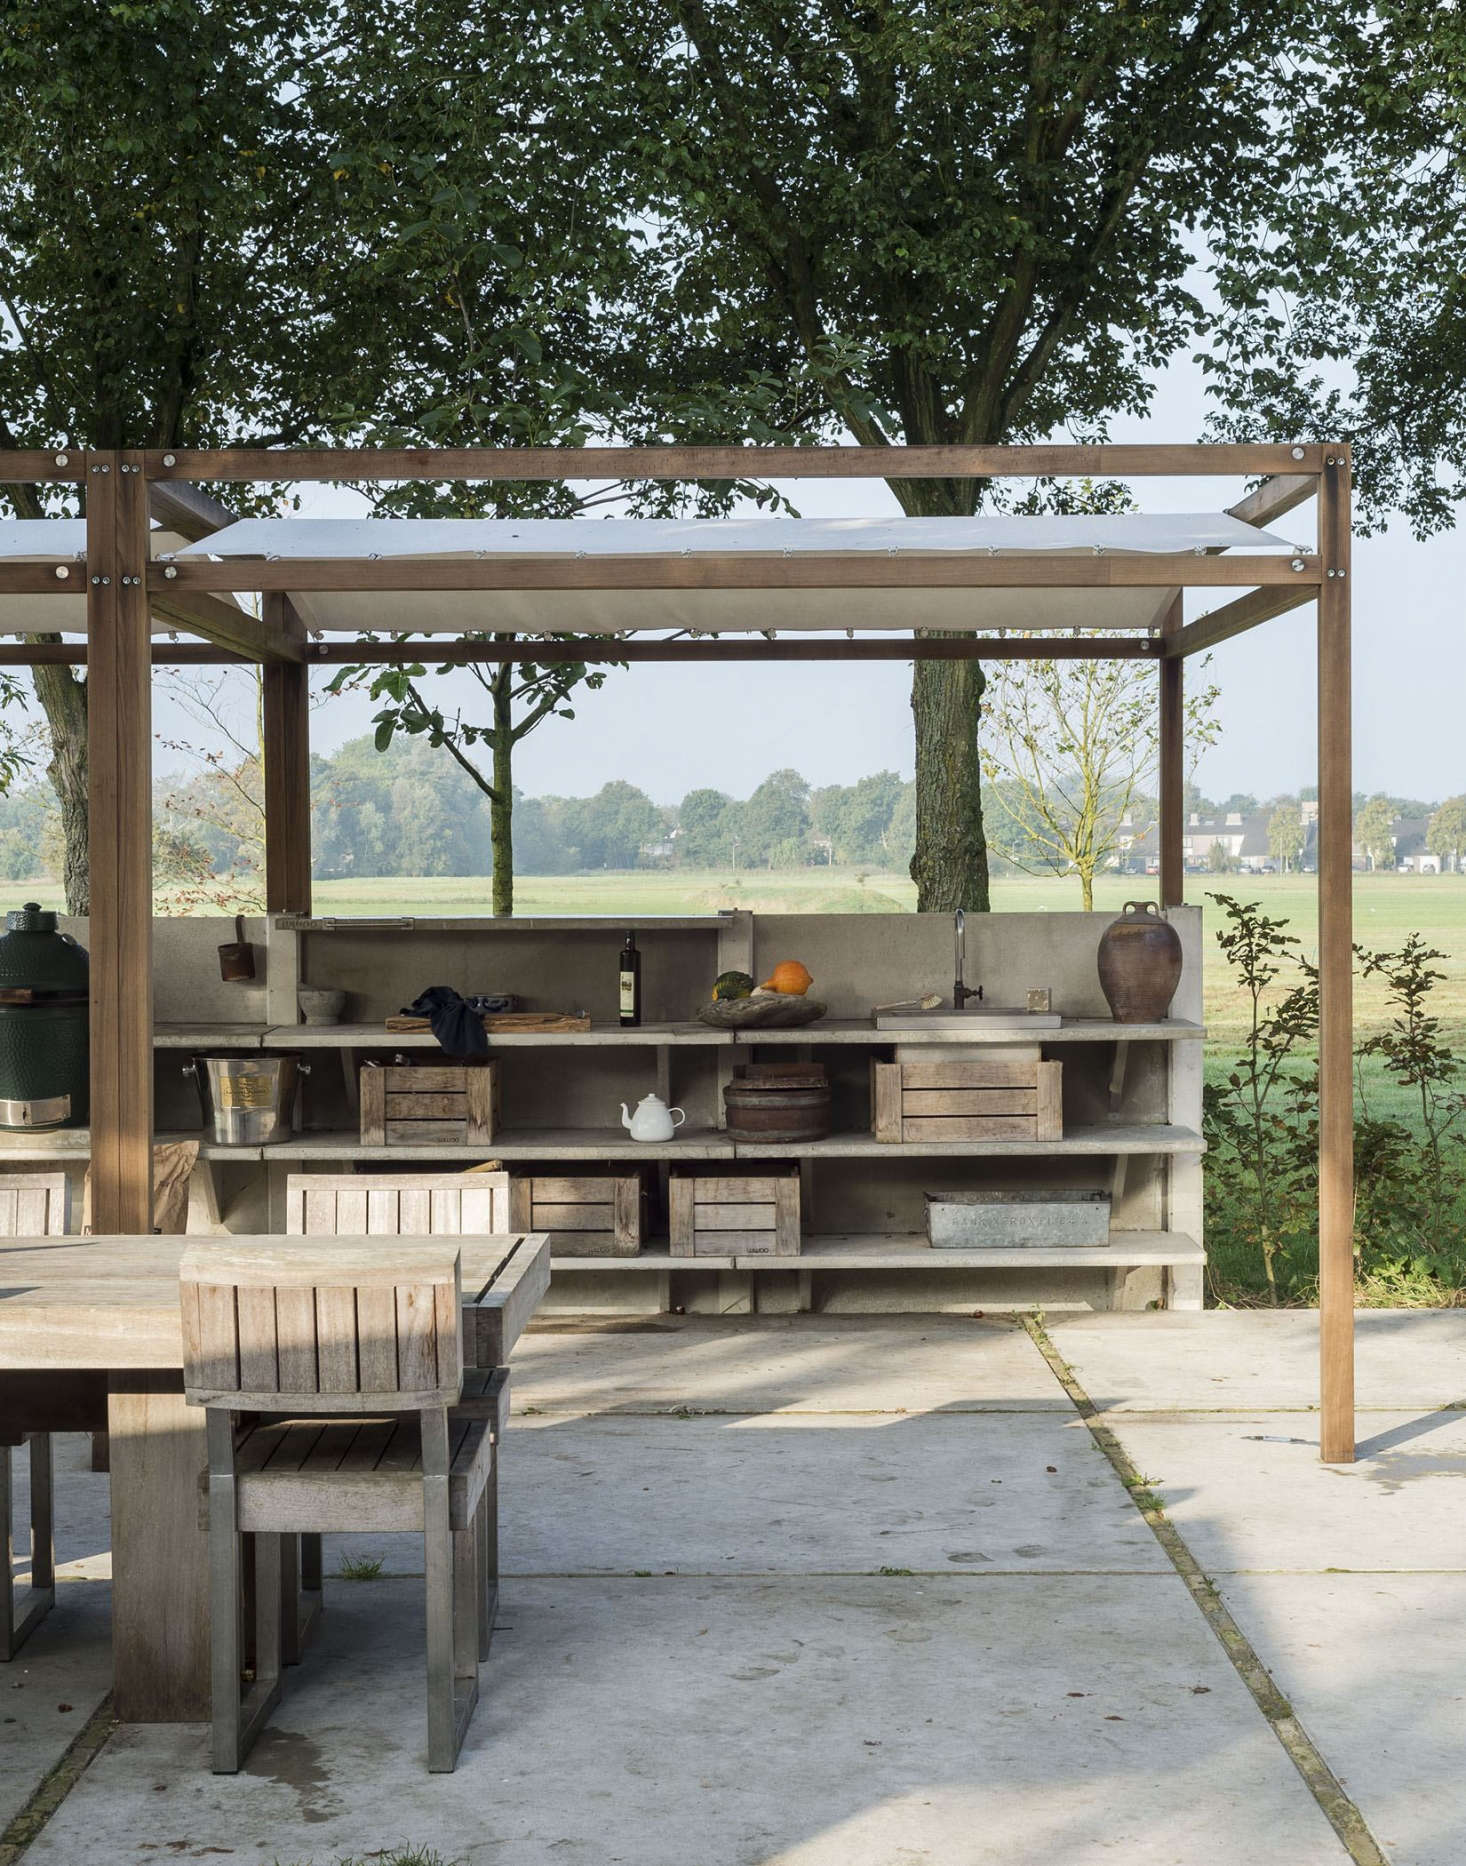 WWOO Kitchens are made of durable concrete requiring next to no maintenance. The concrete components are available in gray (shown) or darker anthracite.Photograph by Matthew Williams from Gardenista: The Definitive Guide to Stylish Outdoor Spaces.